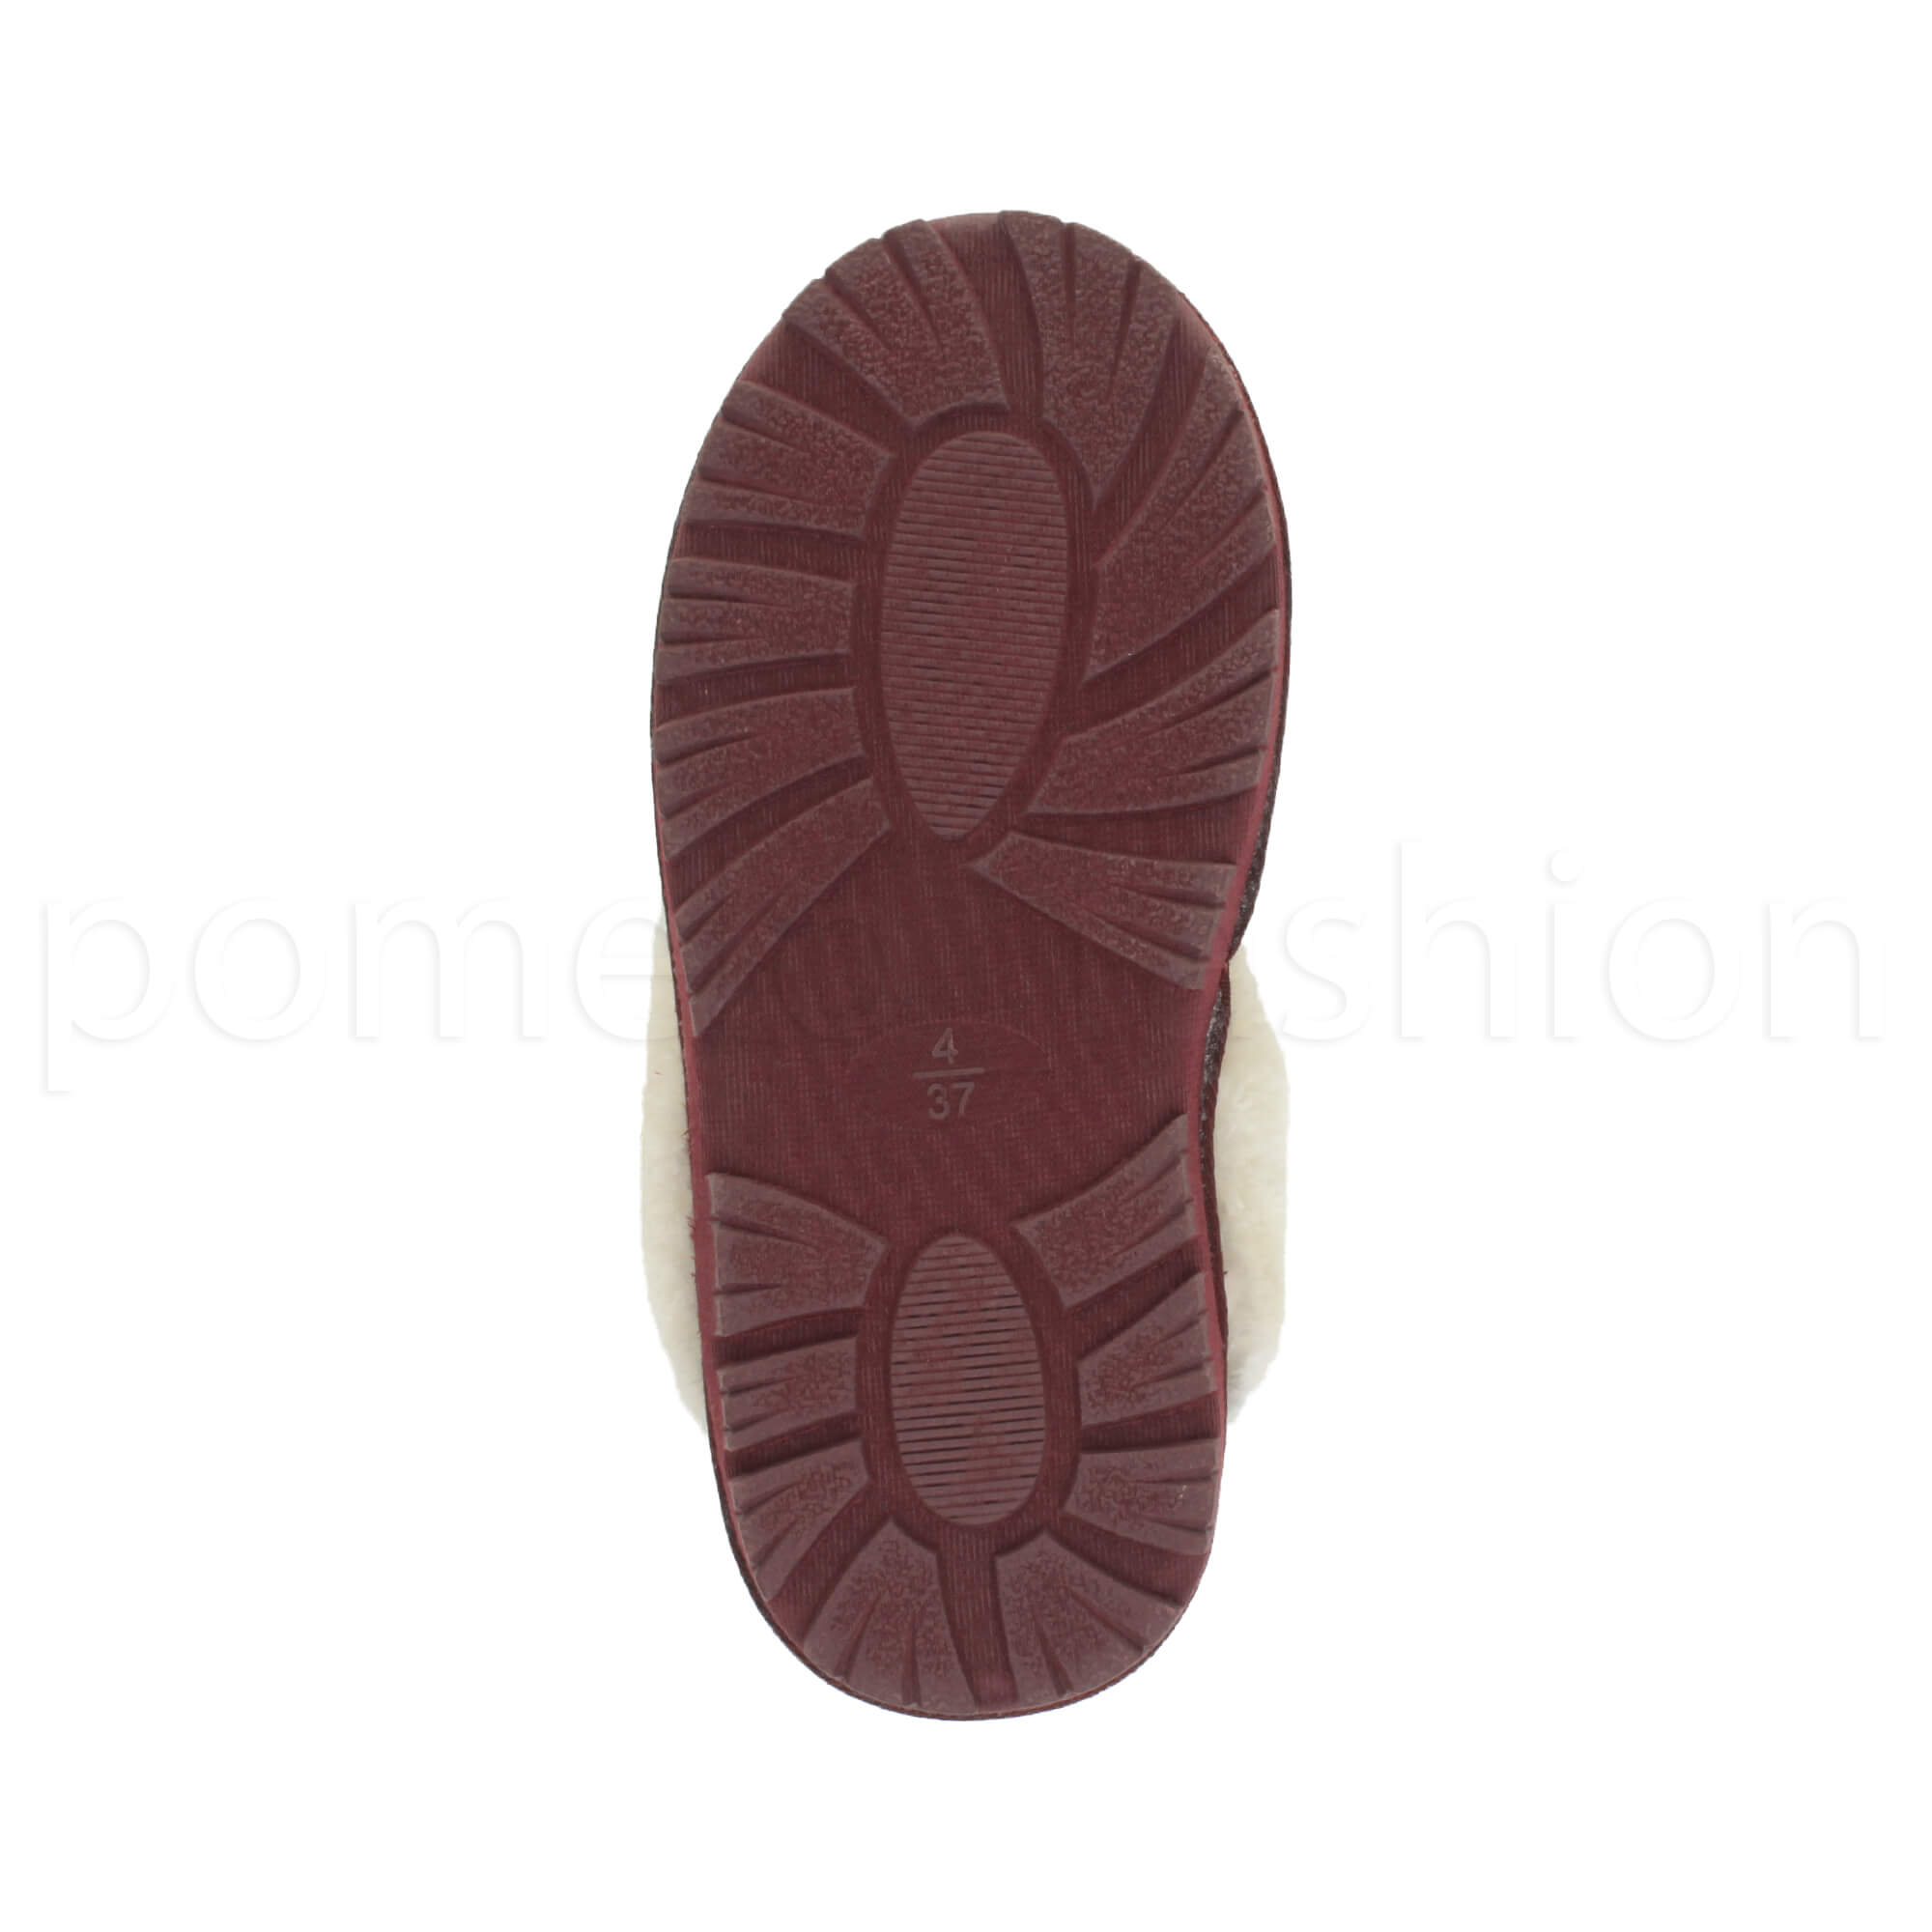 WOMENS-LADIES-FLAT-FUR-LINED-COMFORTABLE-WINTER-MULES-SLIPPERS-HOUSE-SHOES-SIZE thumbnail 43